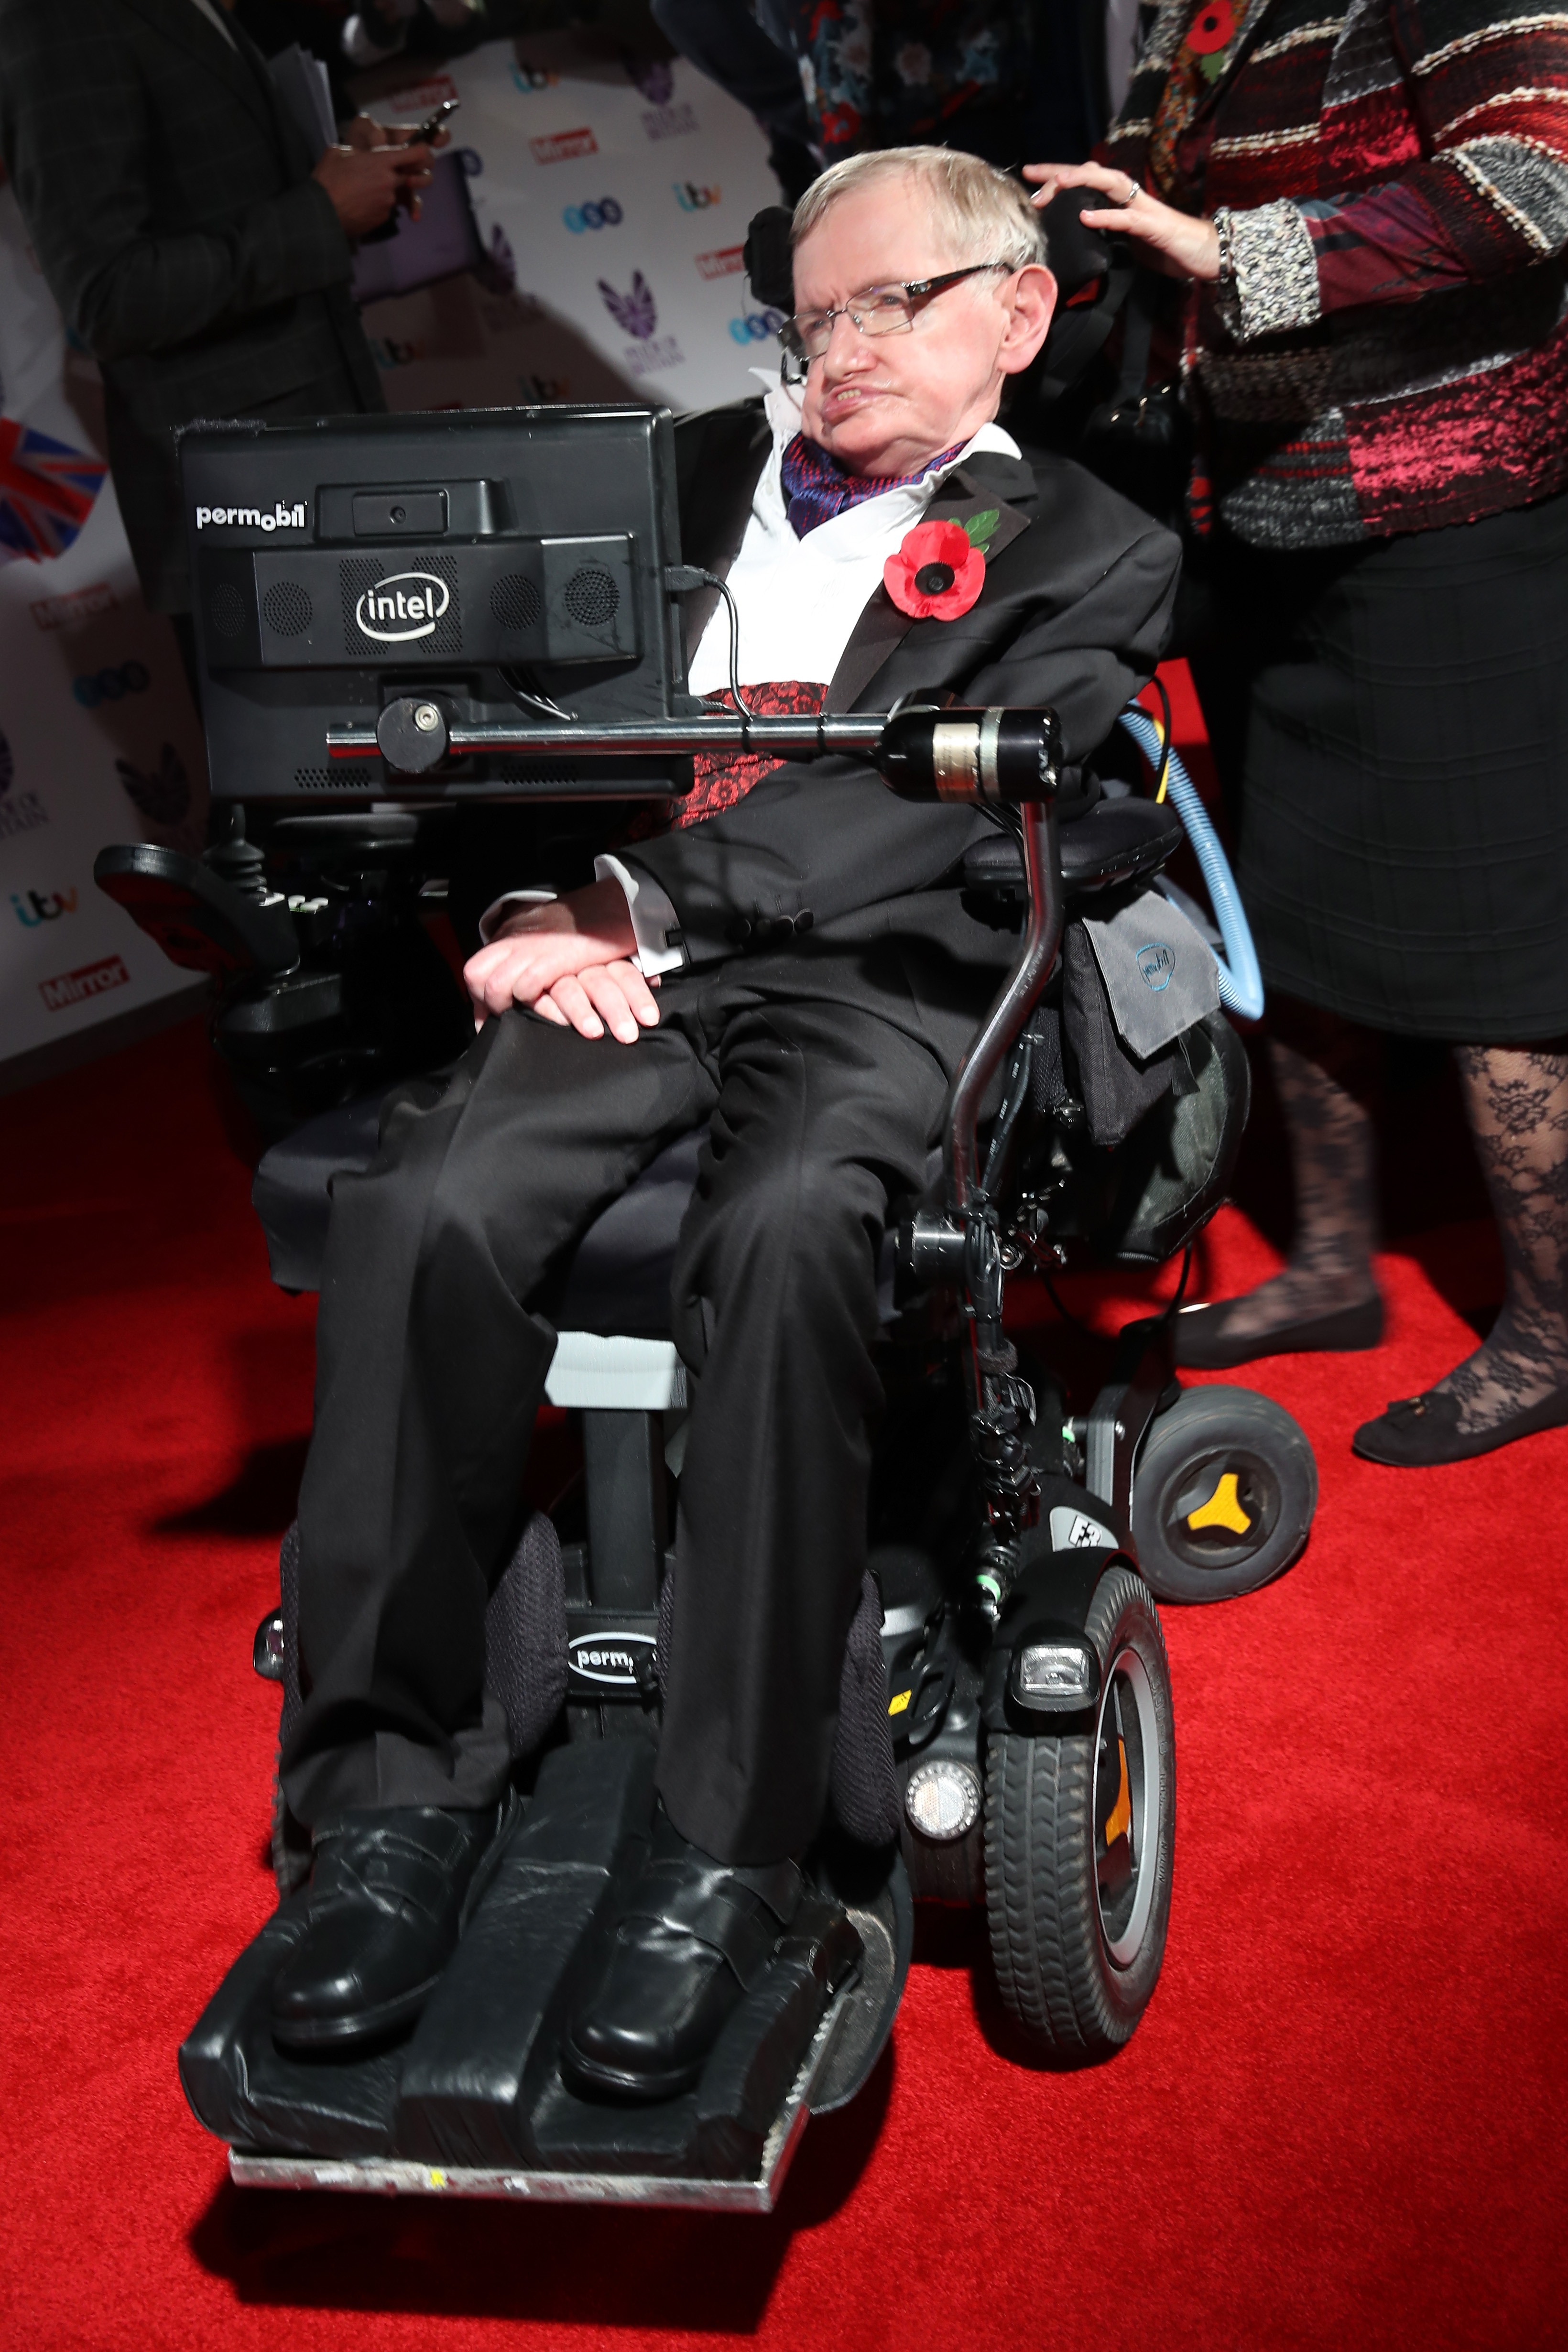 Stephen Hawking attends the Pride Of Britain awards at the Grosvenor House Hotel on October 31, 2016 in London, England. (Photo by Chris Jackson/Getty Images)